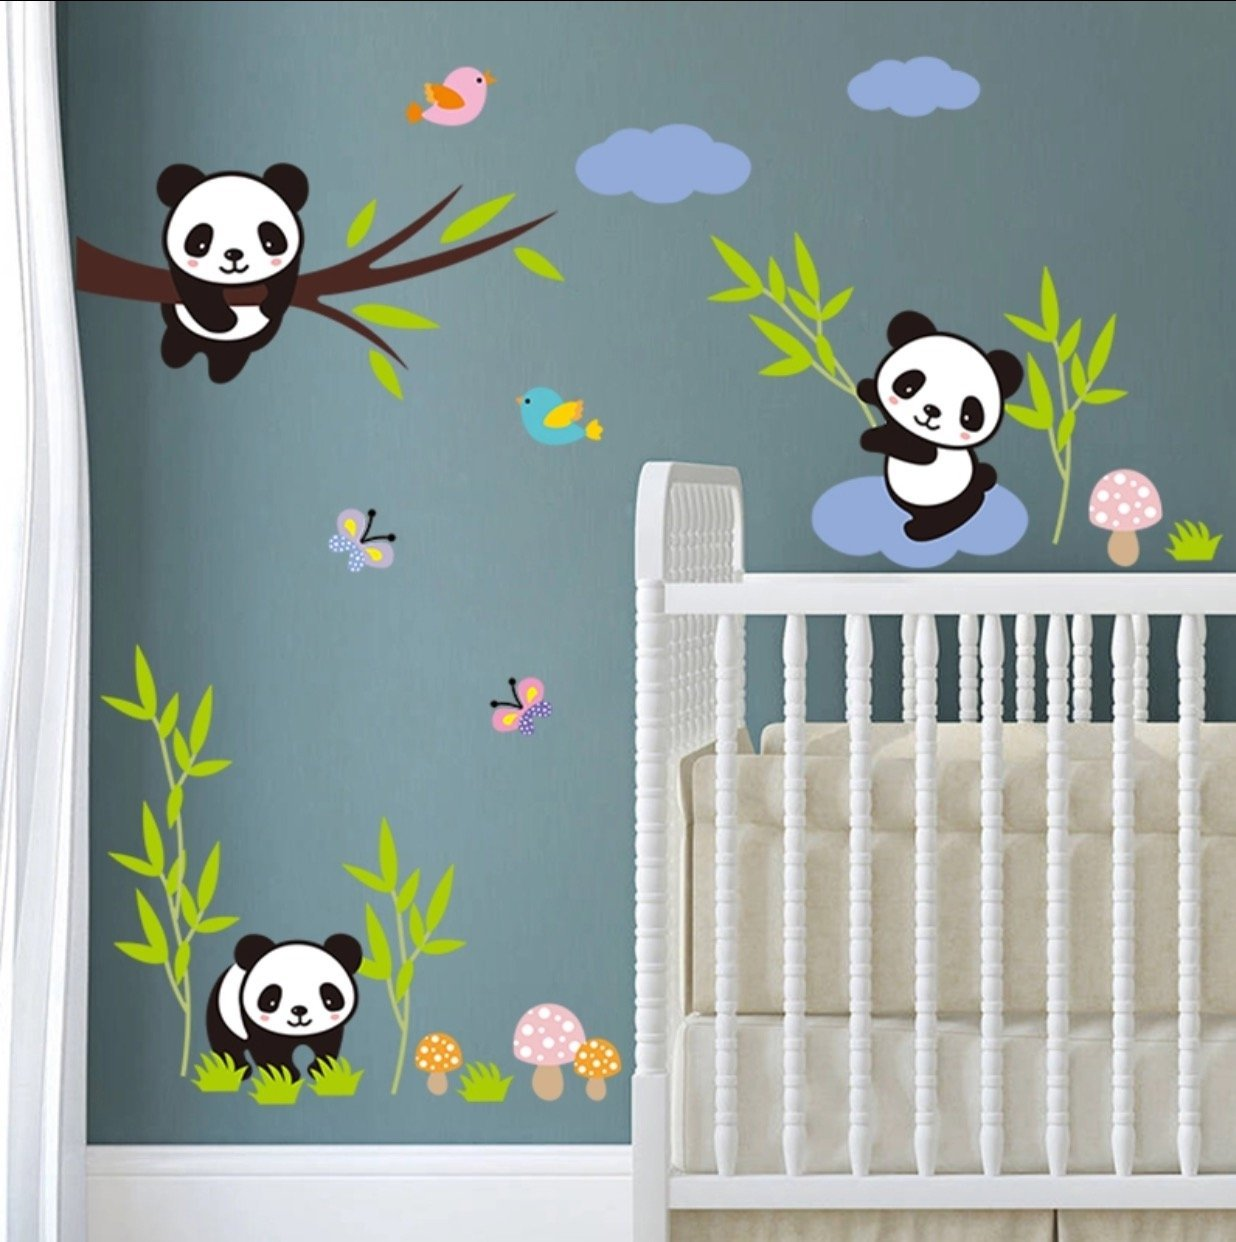 Forest Panda bamboo Birds tree Wall Stickers For Kids room baby Nursery Room decor animals Wall decals mural art Sticker world